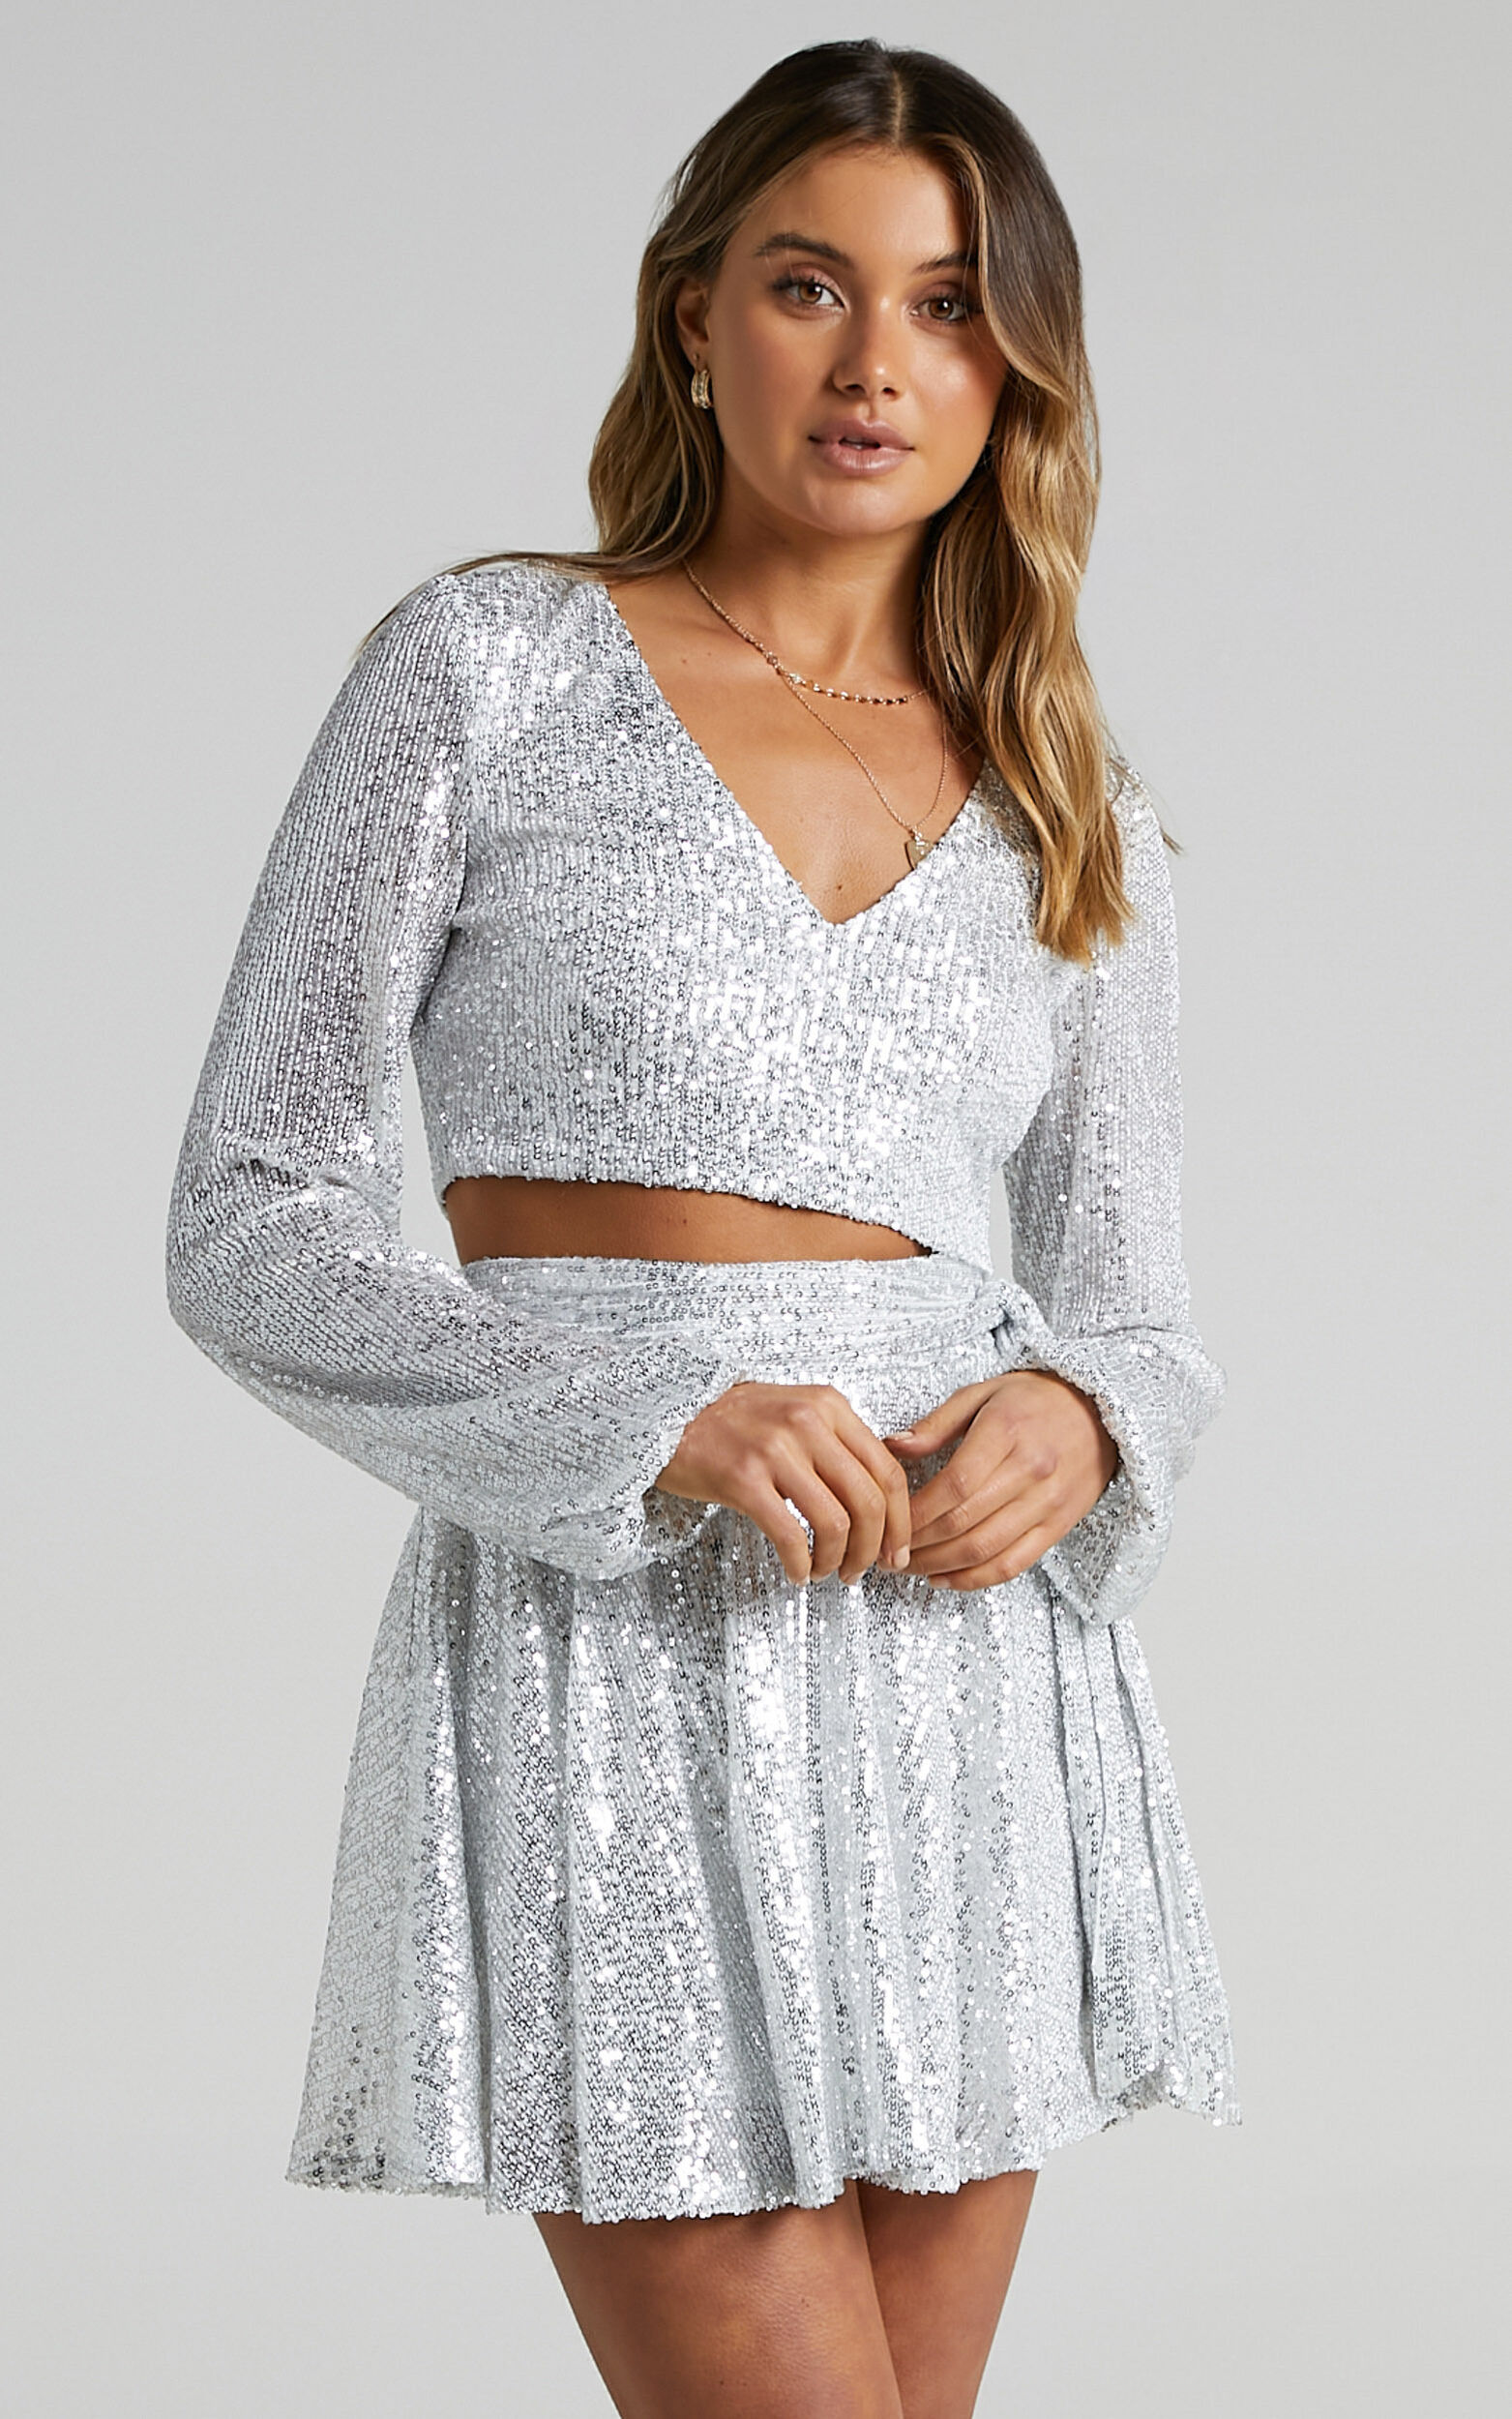 Cami Longsleeve Two Piece Set in Silver Sequin - 06, SLV2, super-hi-res image number null